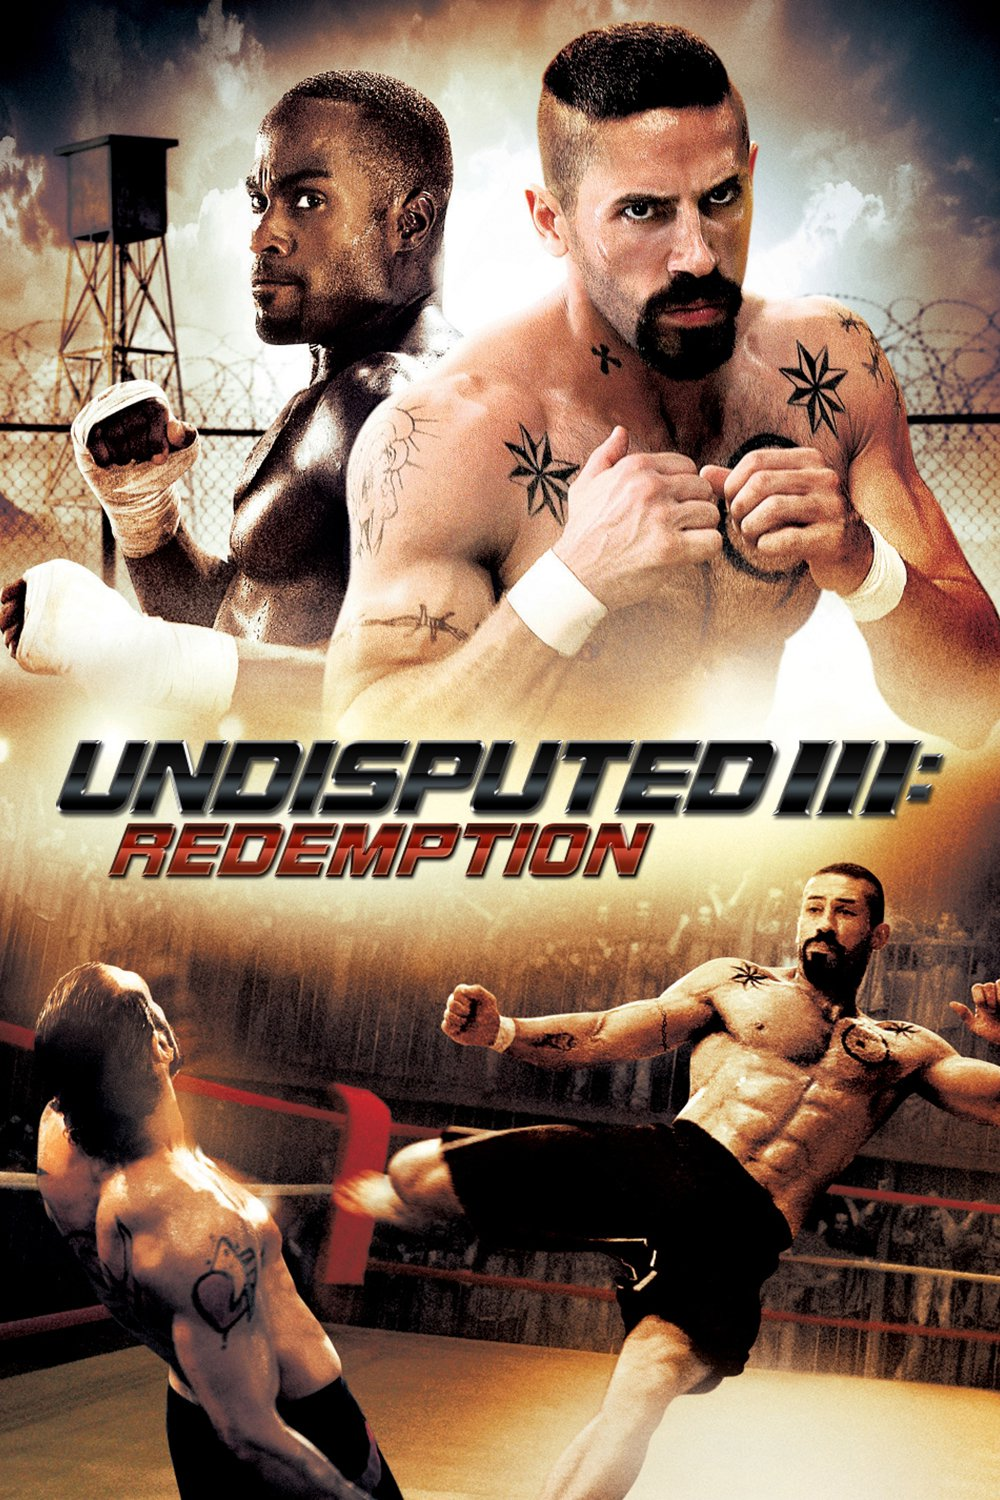 Undisputed 3: Redemption 2010 - Full (HD)